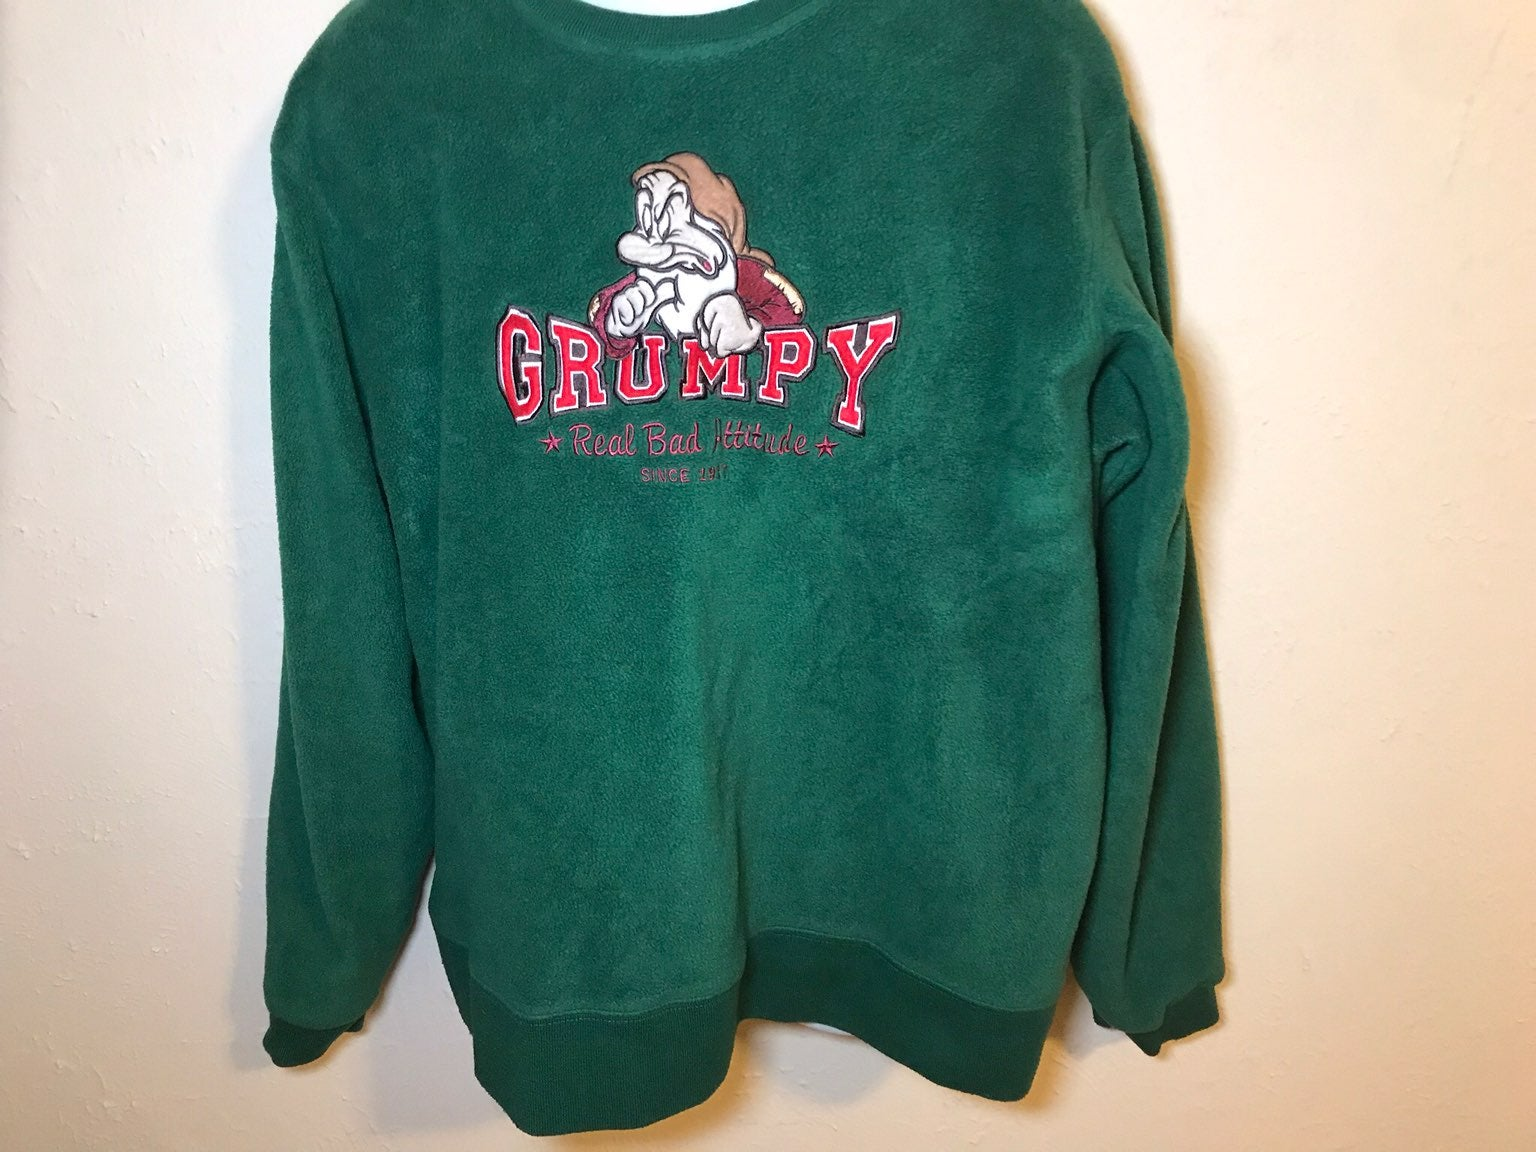 Disney Grumpy Fleece Sweatshirt Men's XL